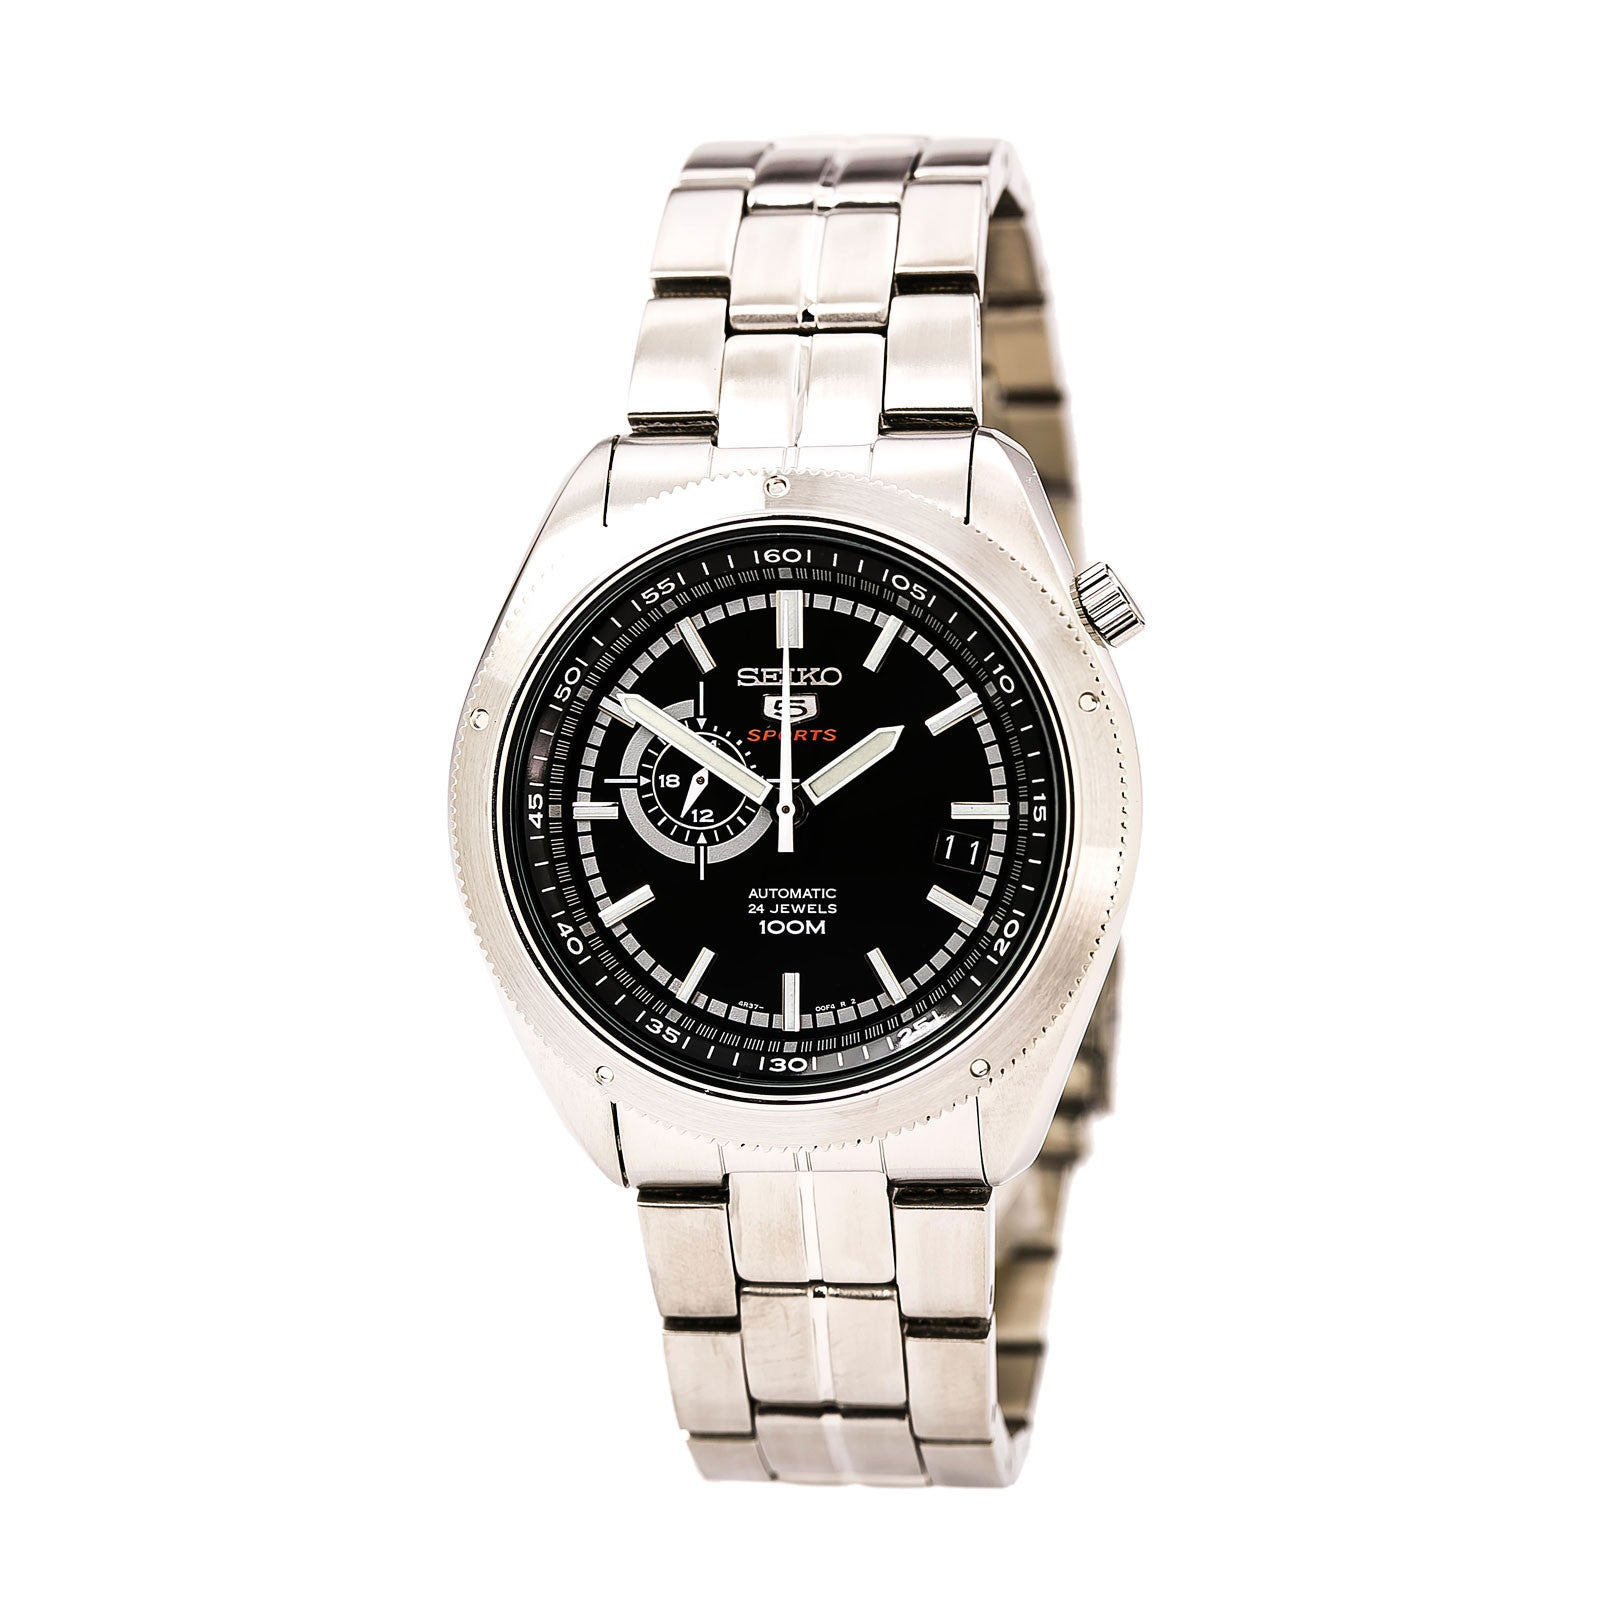 Seiko SSA065K1 Gent's Automatic Black Dial Black Strap Date Watch